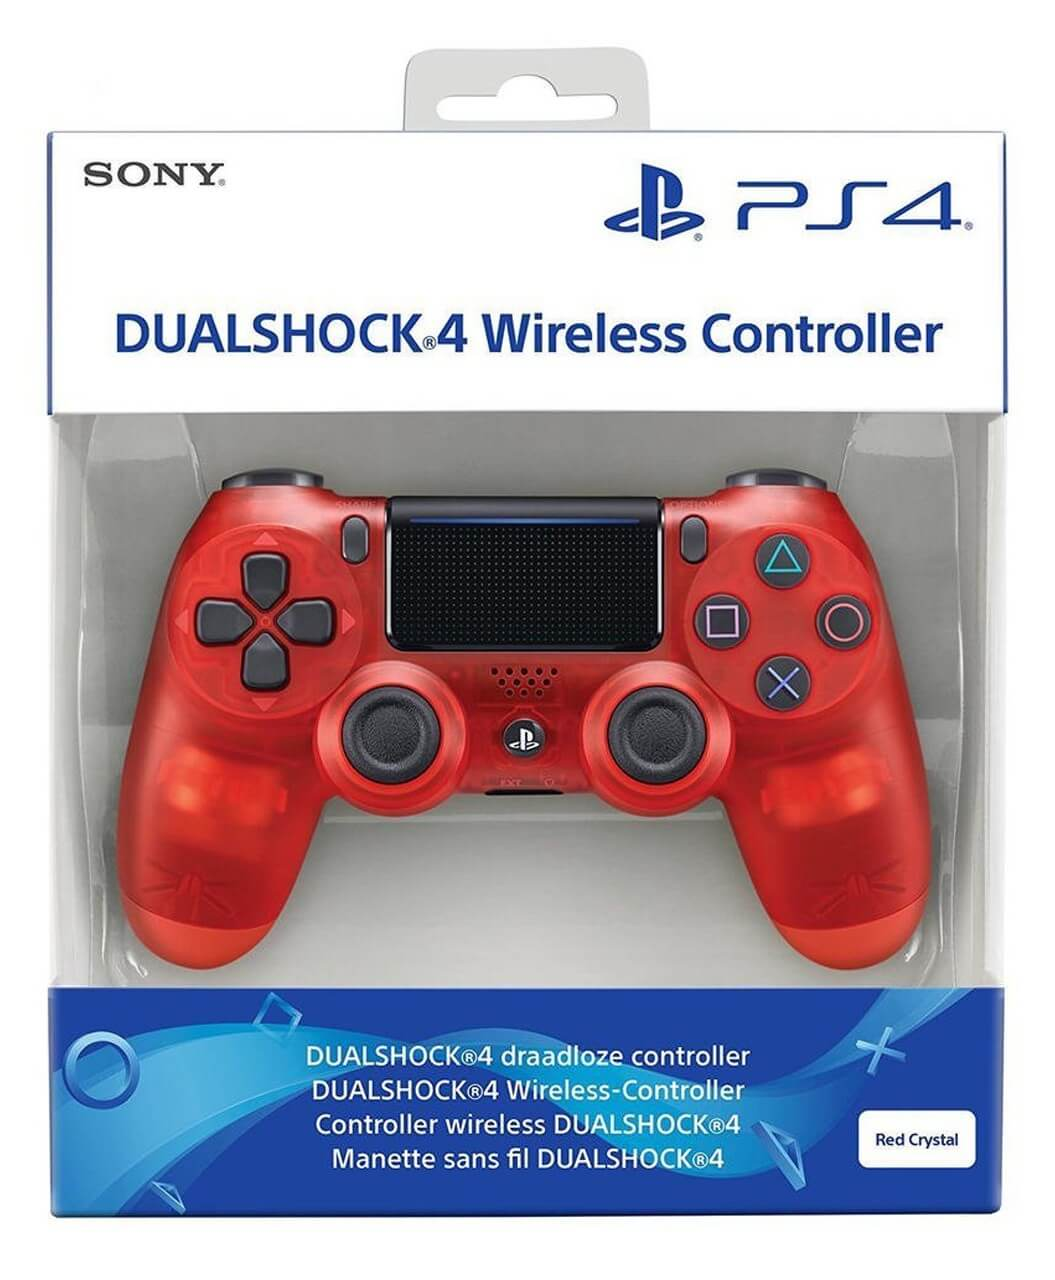 Sony PlayStation DualShock 4 V2 Controller - Crystal Red